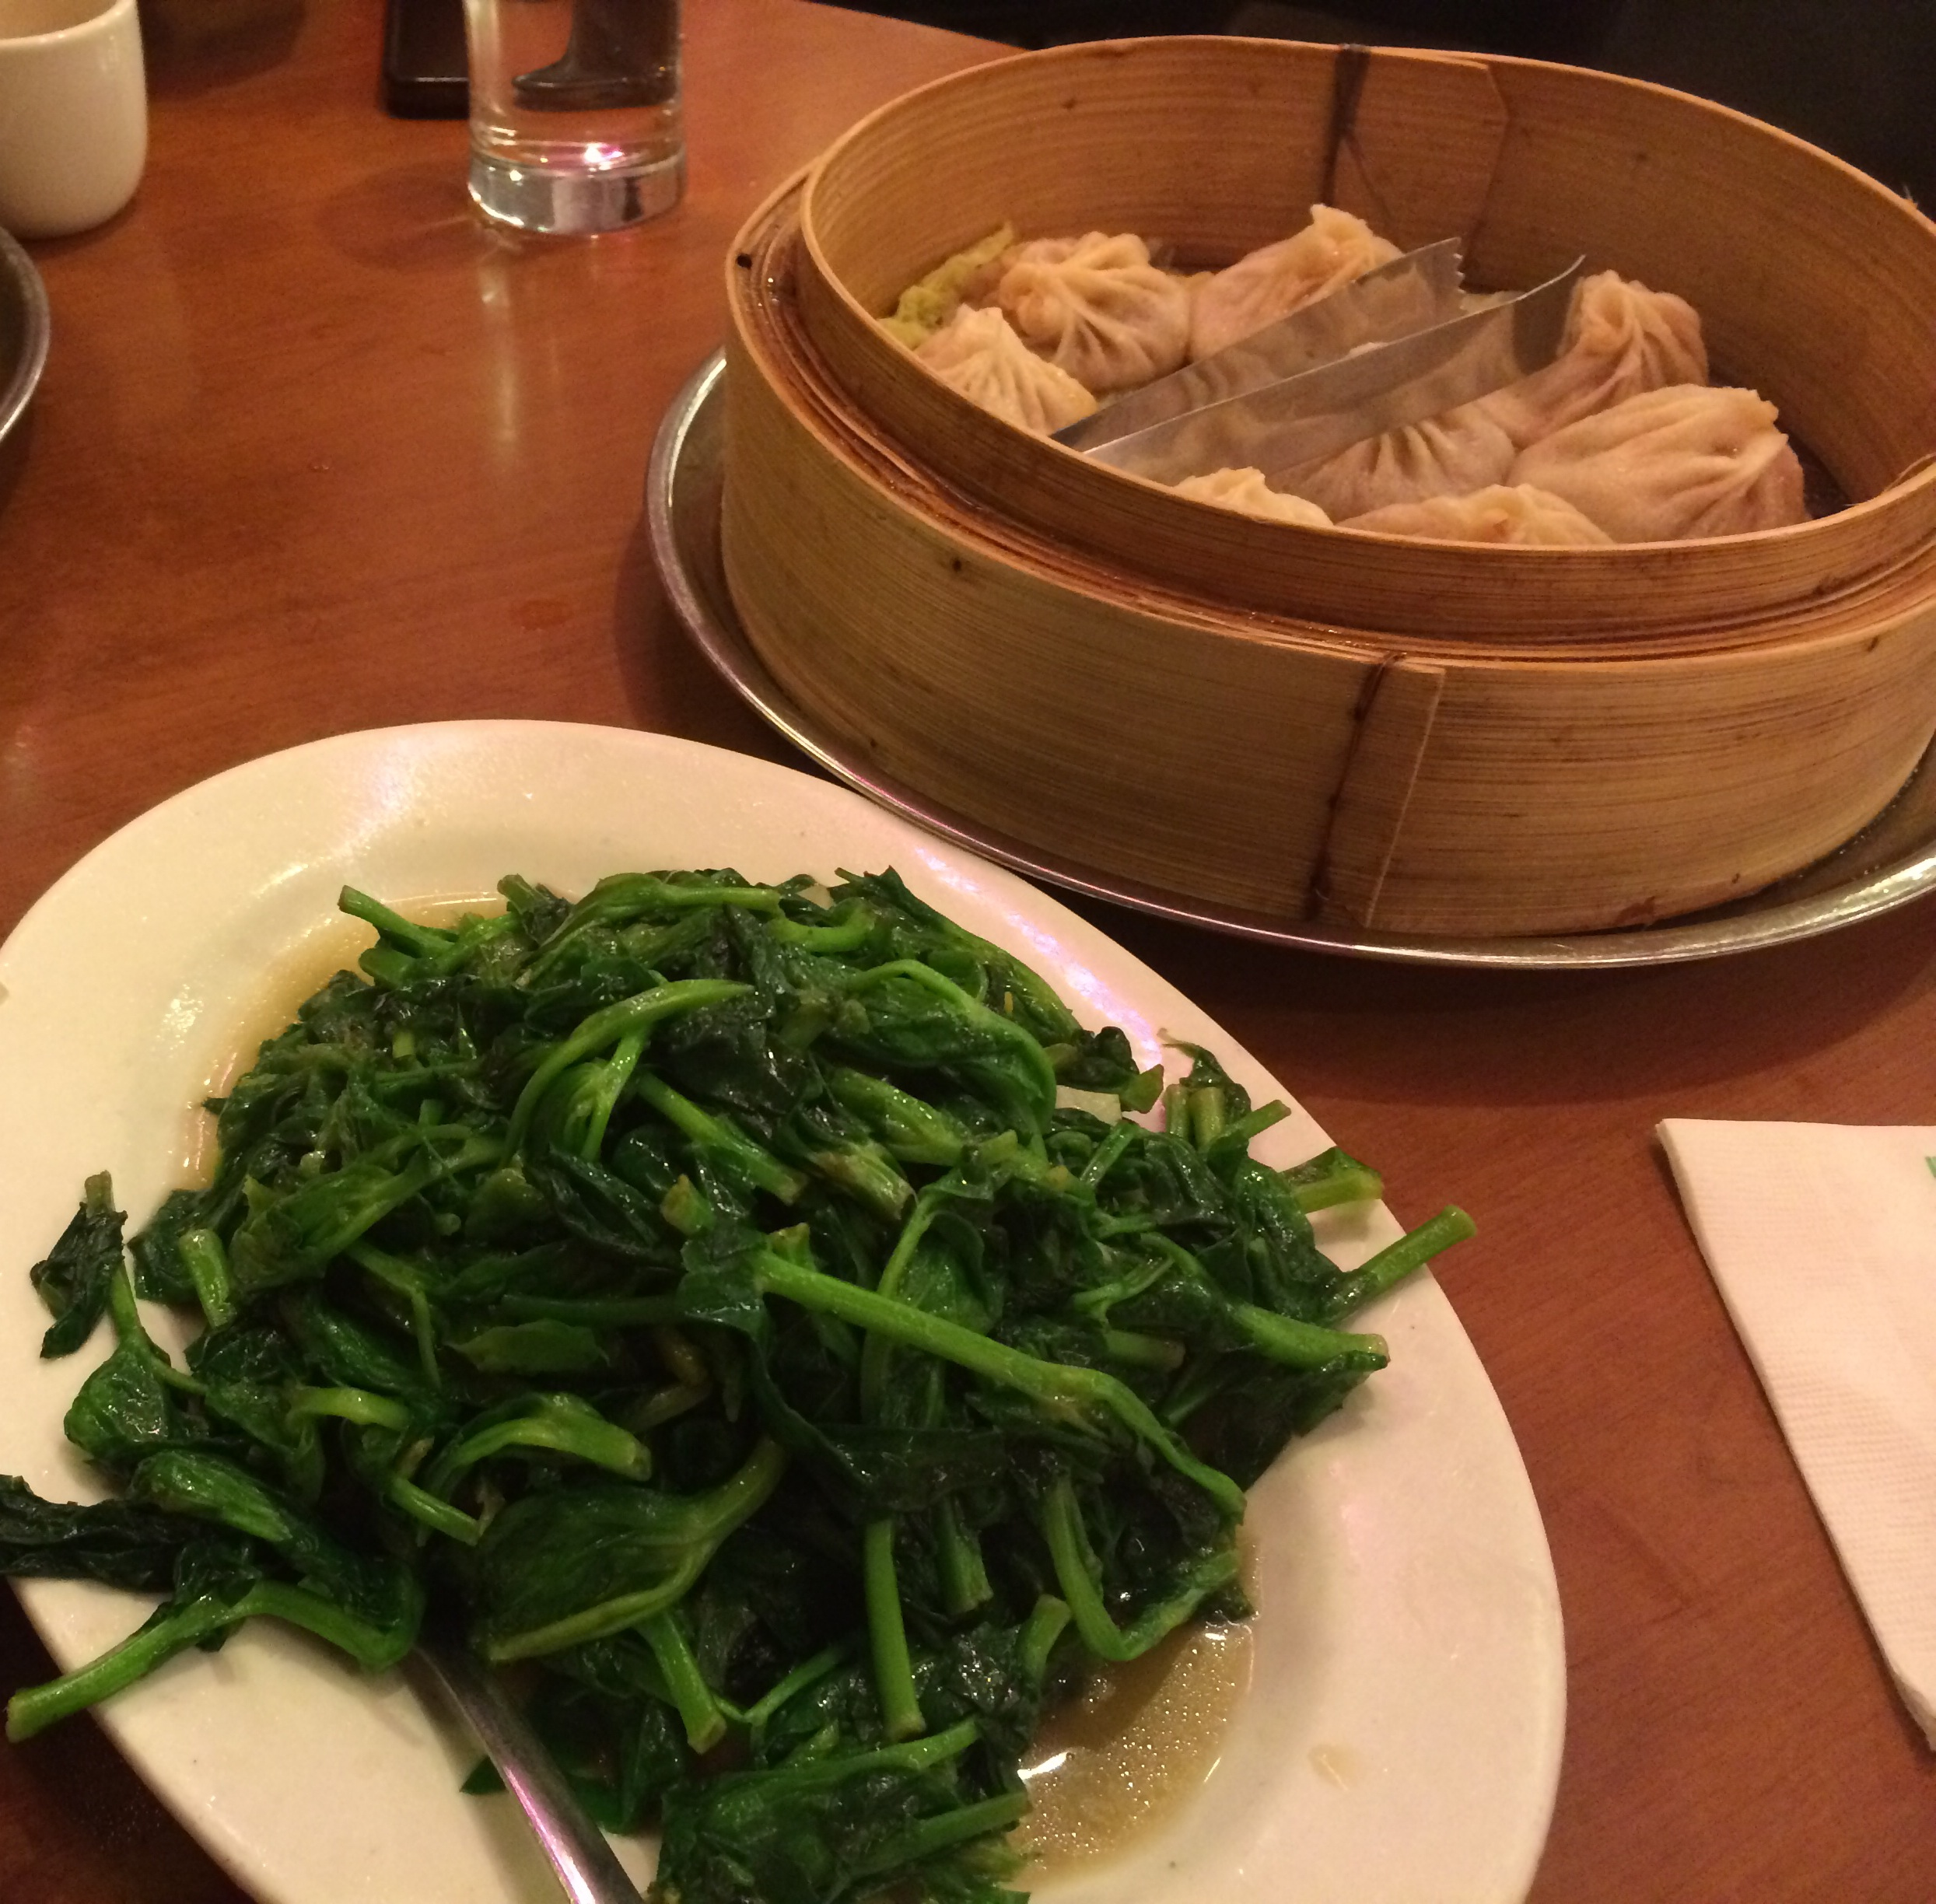 STIR-FRIED SNOW PEA LEAVES